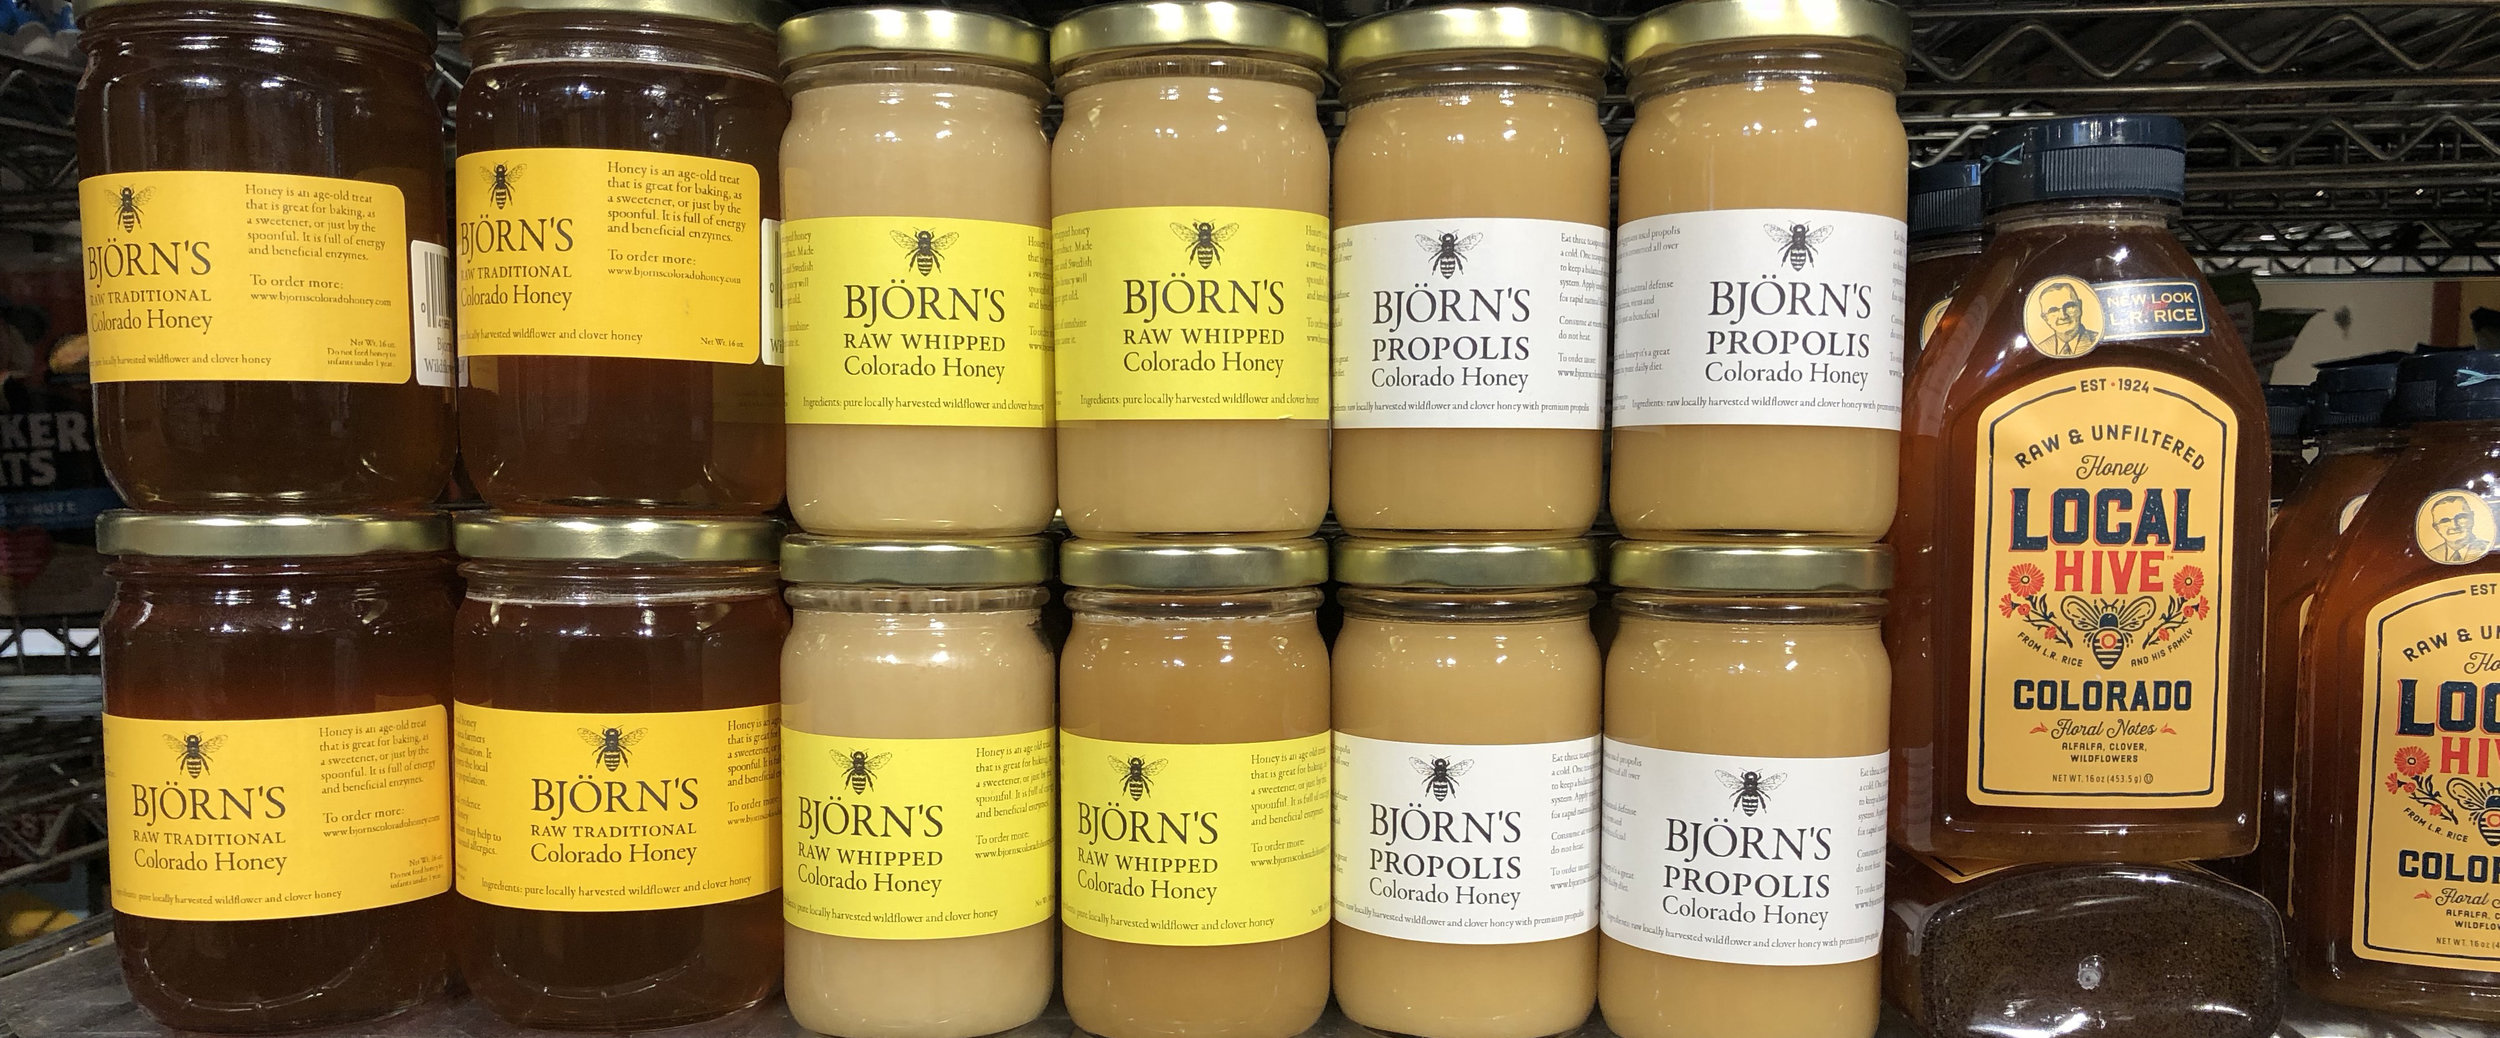 Colorado Honey: Enjoy the flavor of Colorado bees. Or something like that.